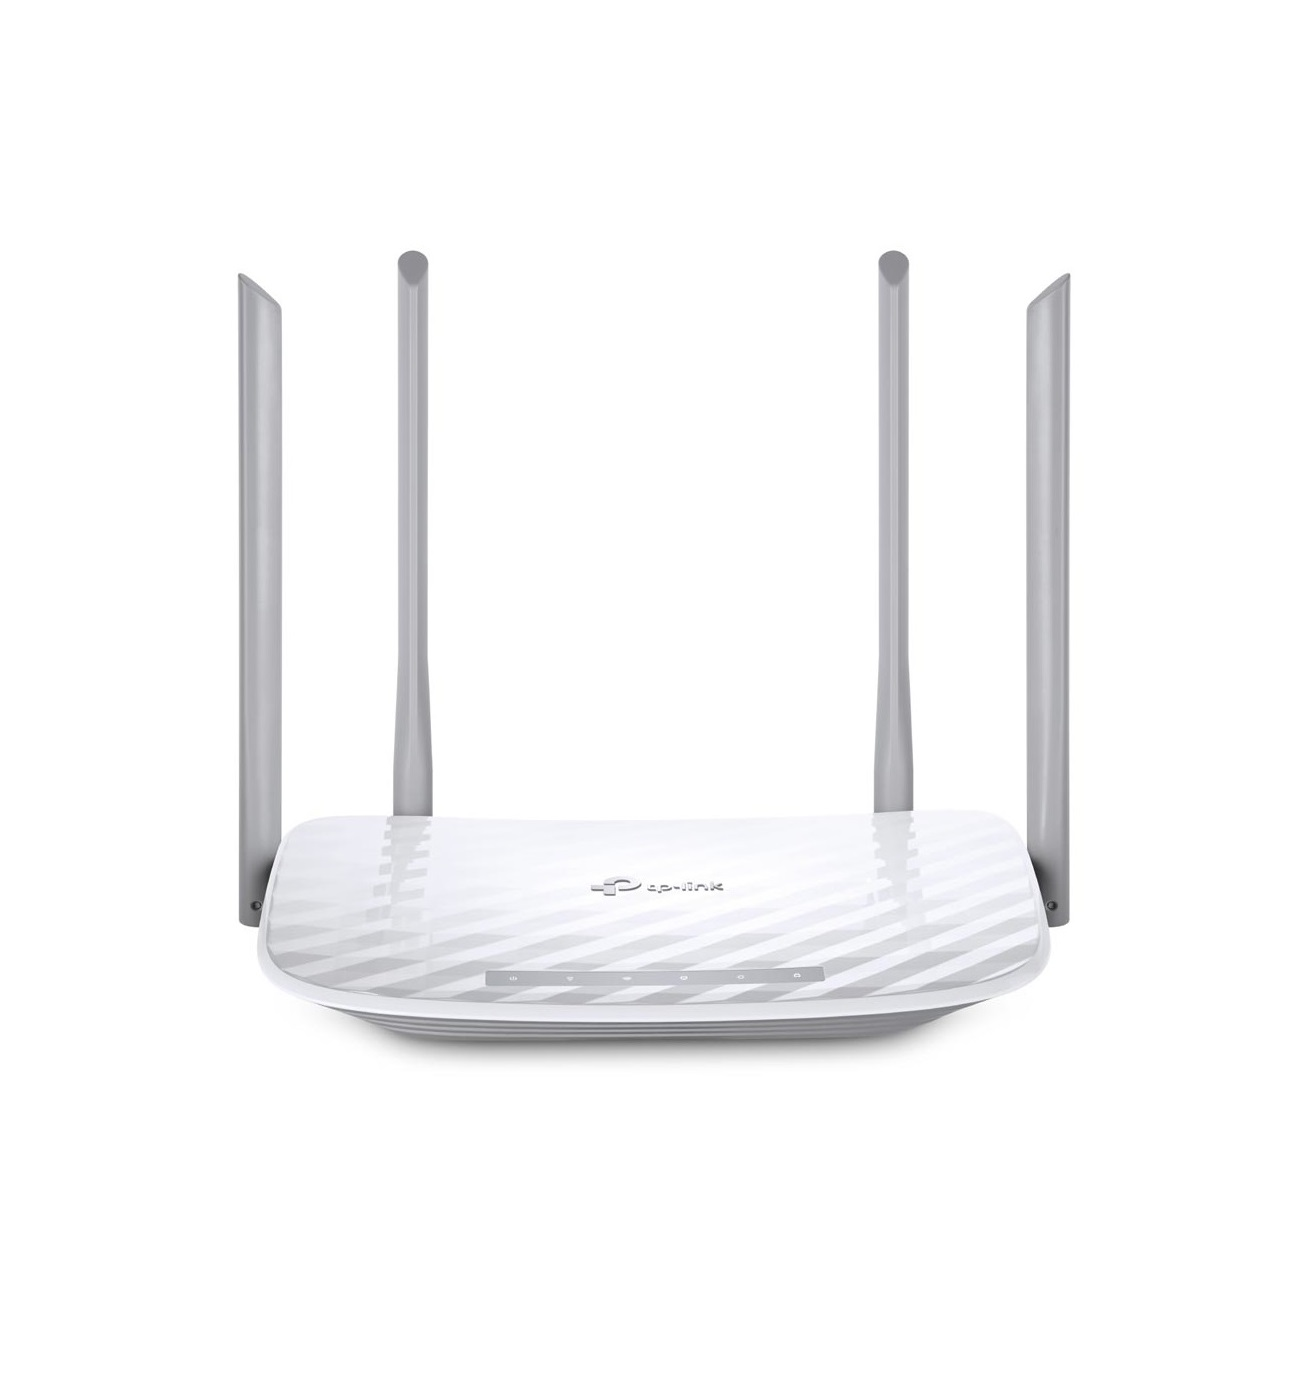 ROTEADOR WIRELESS TP-LINK ARCHER C50 DUAL BAND